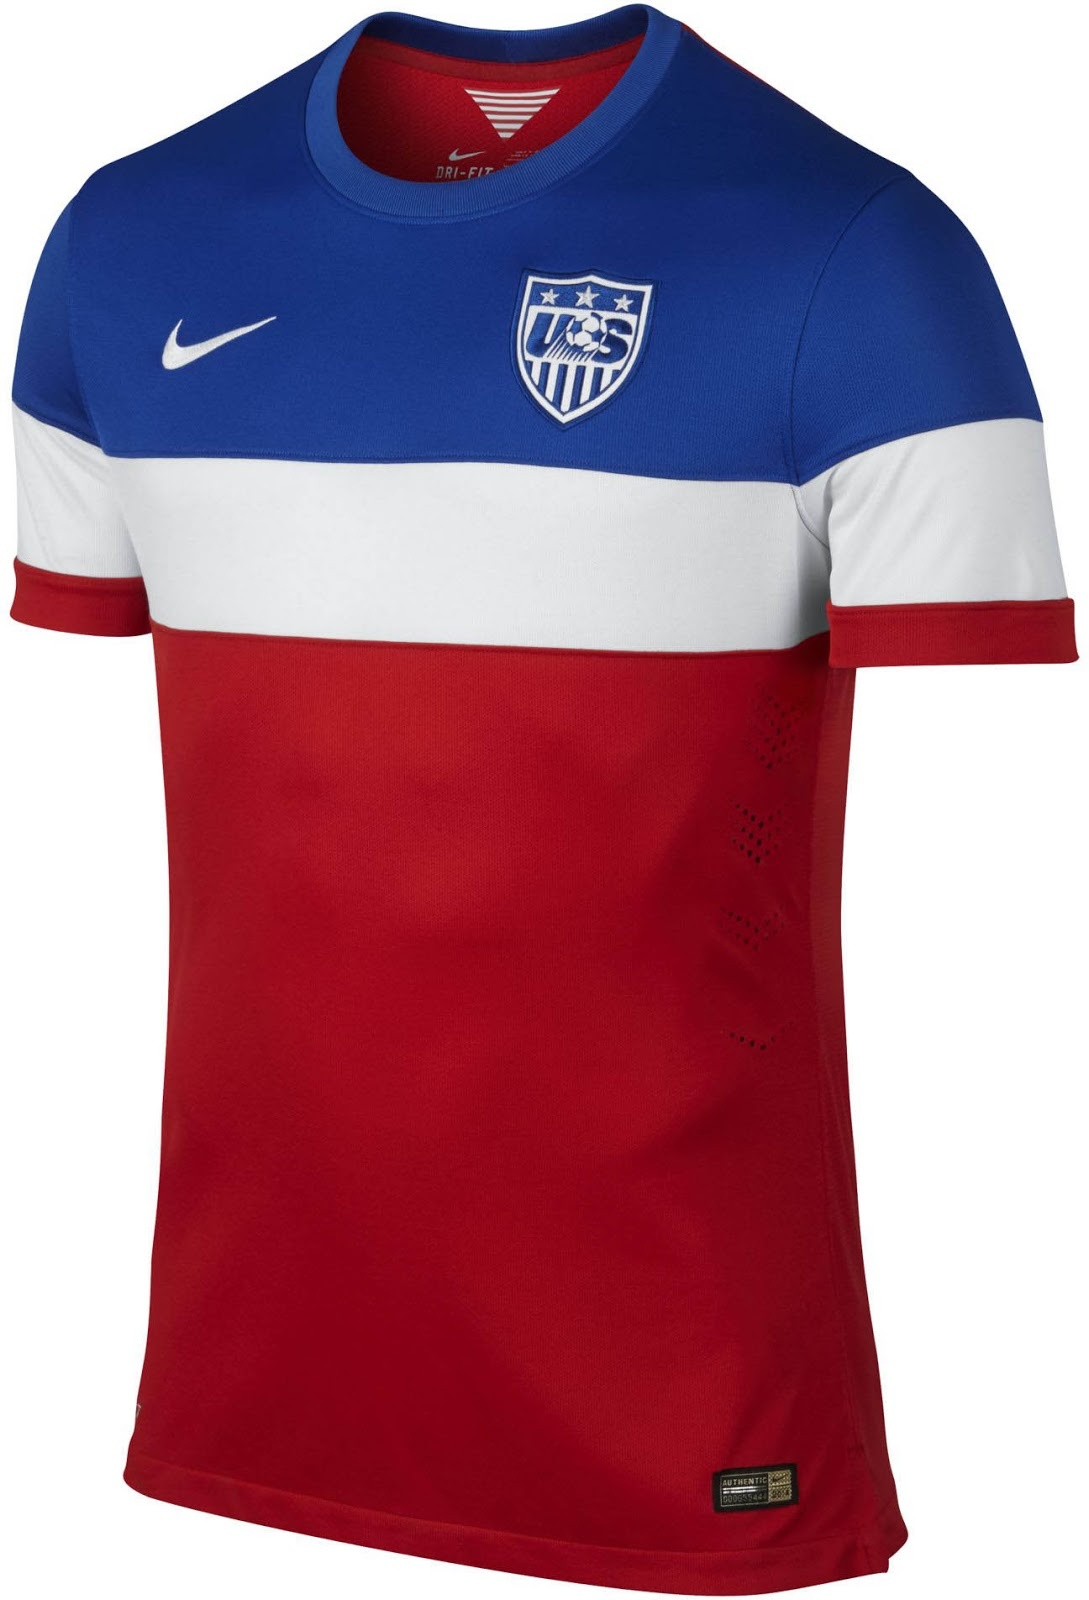 4f98dbb697f USA 2014 World Cup Home and Away Kits Released